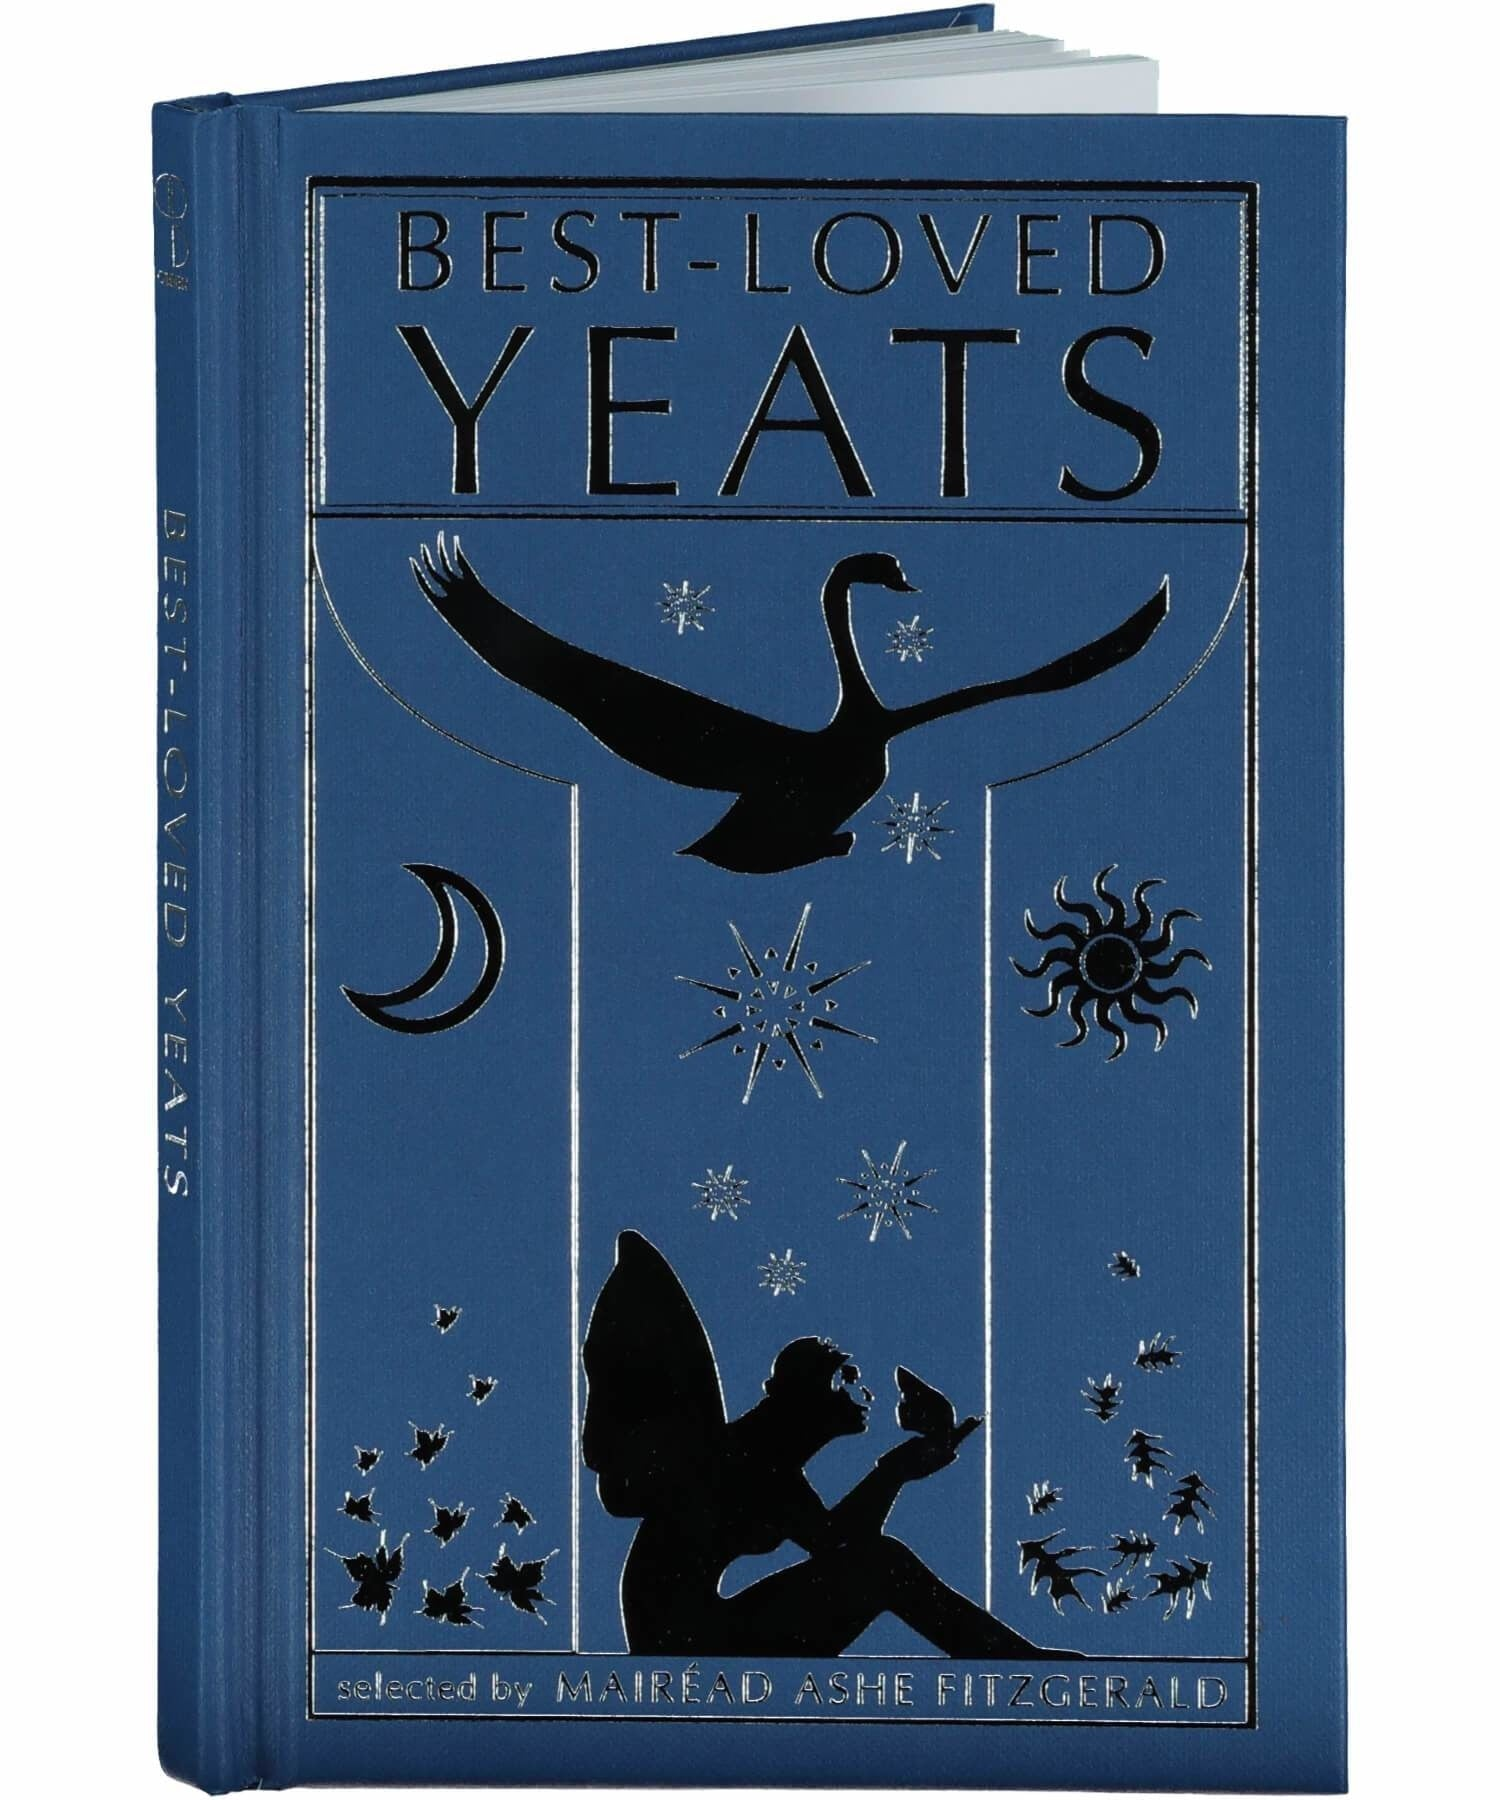 Best Loved Yeats - [The O'Brien Press] - Books & Stationery - Irish Gifts